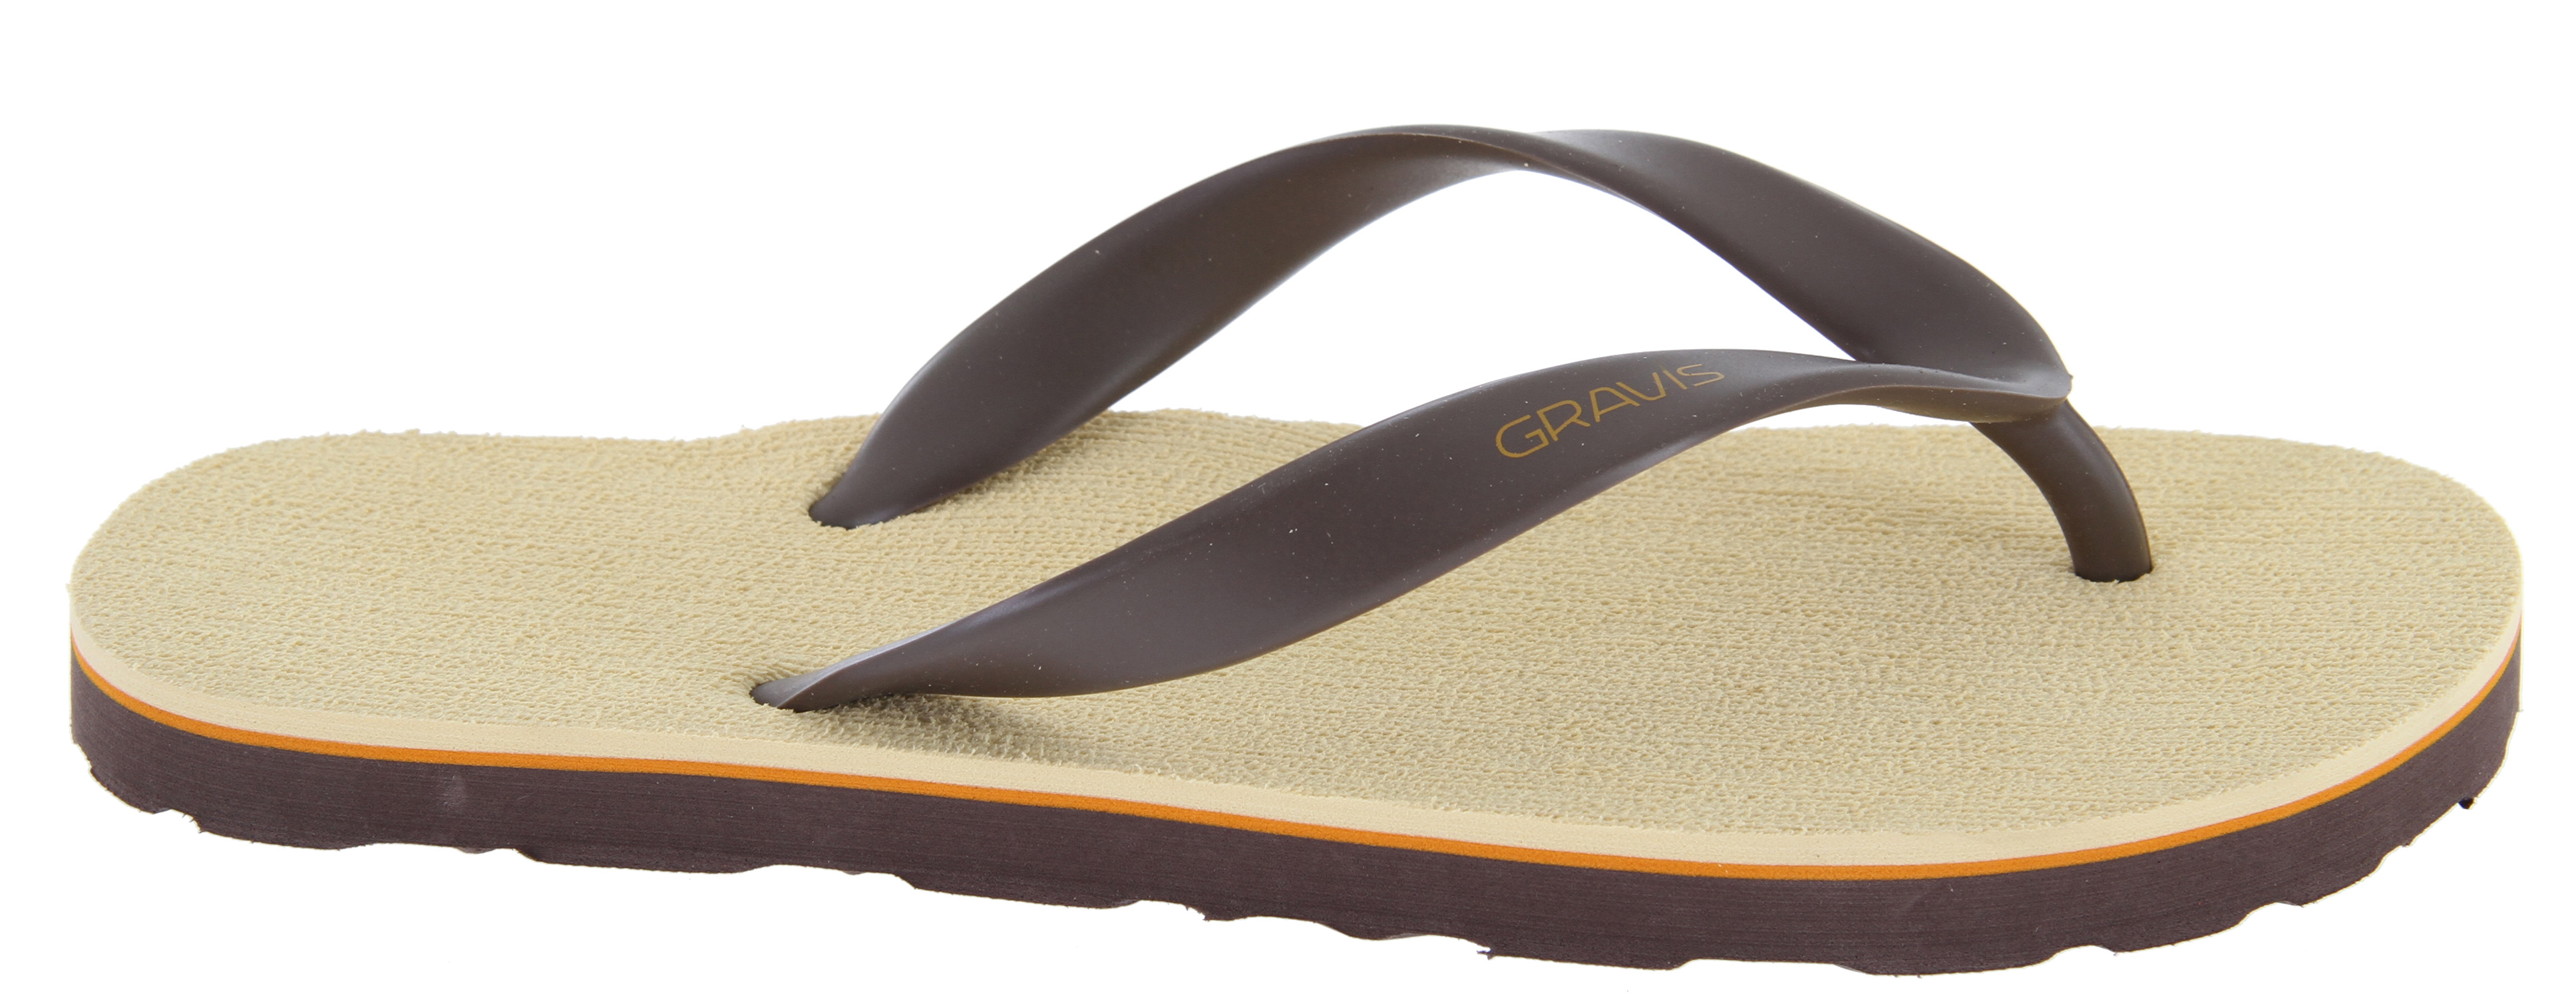 Surf Key Features of the Gravis Crescent Sandals: EVA cushioning topdeck TPU strap Arch support Durable traction outsole - $5.57